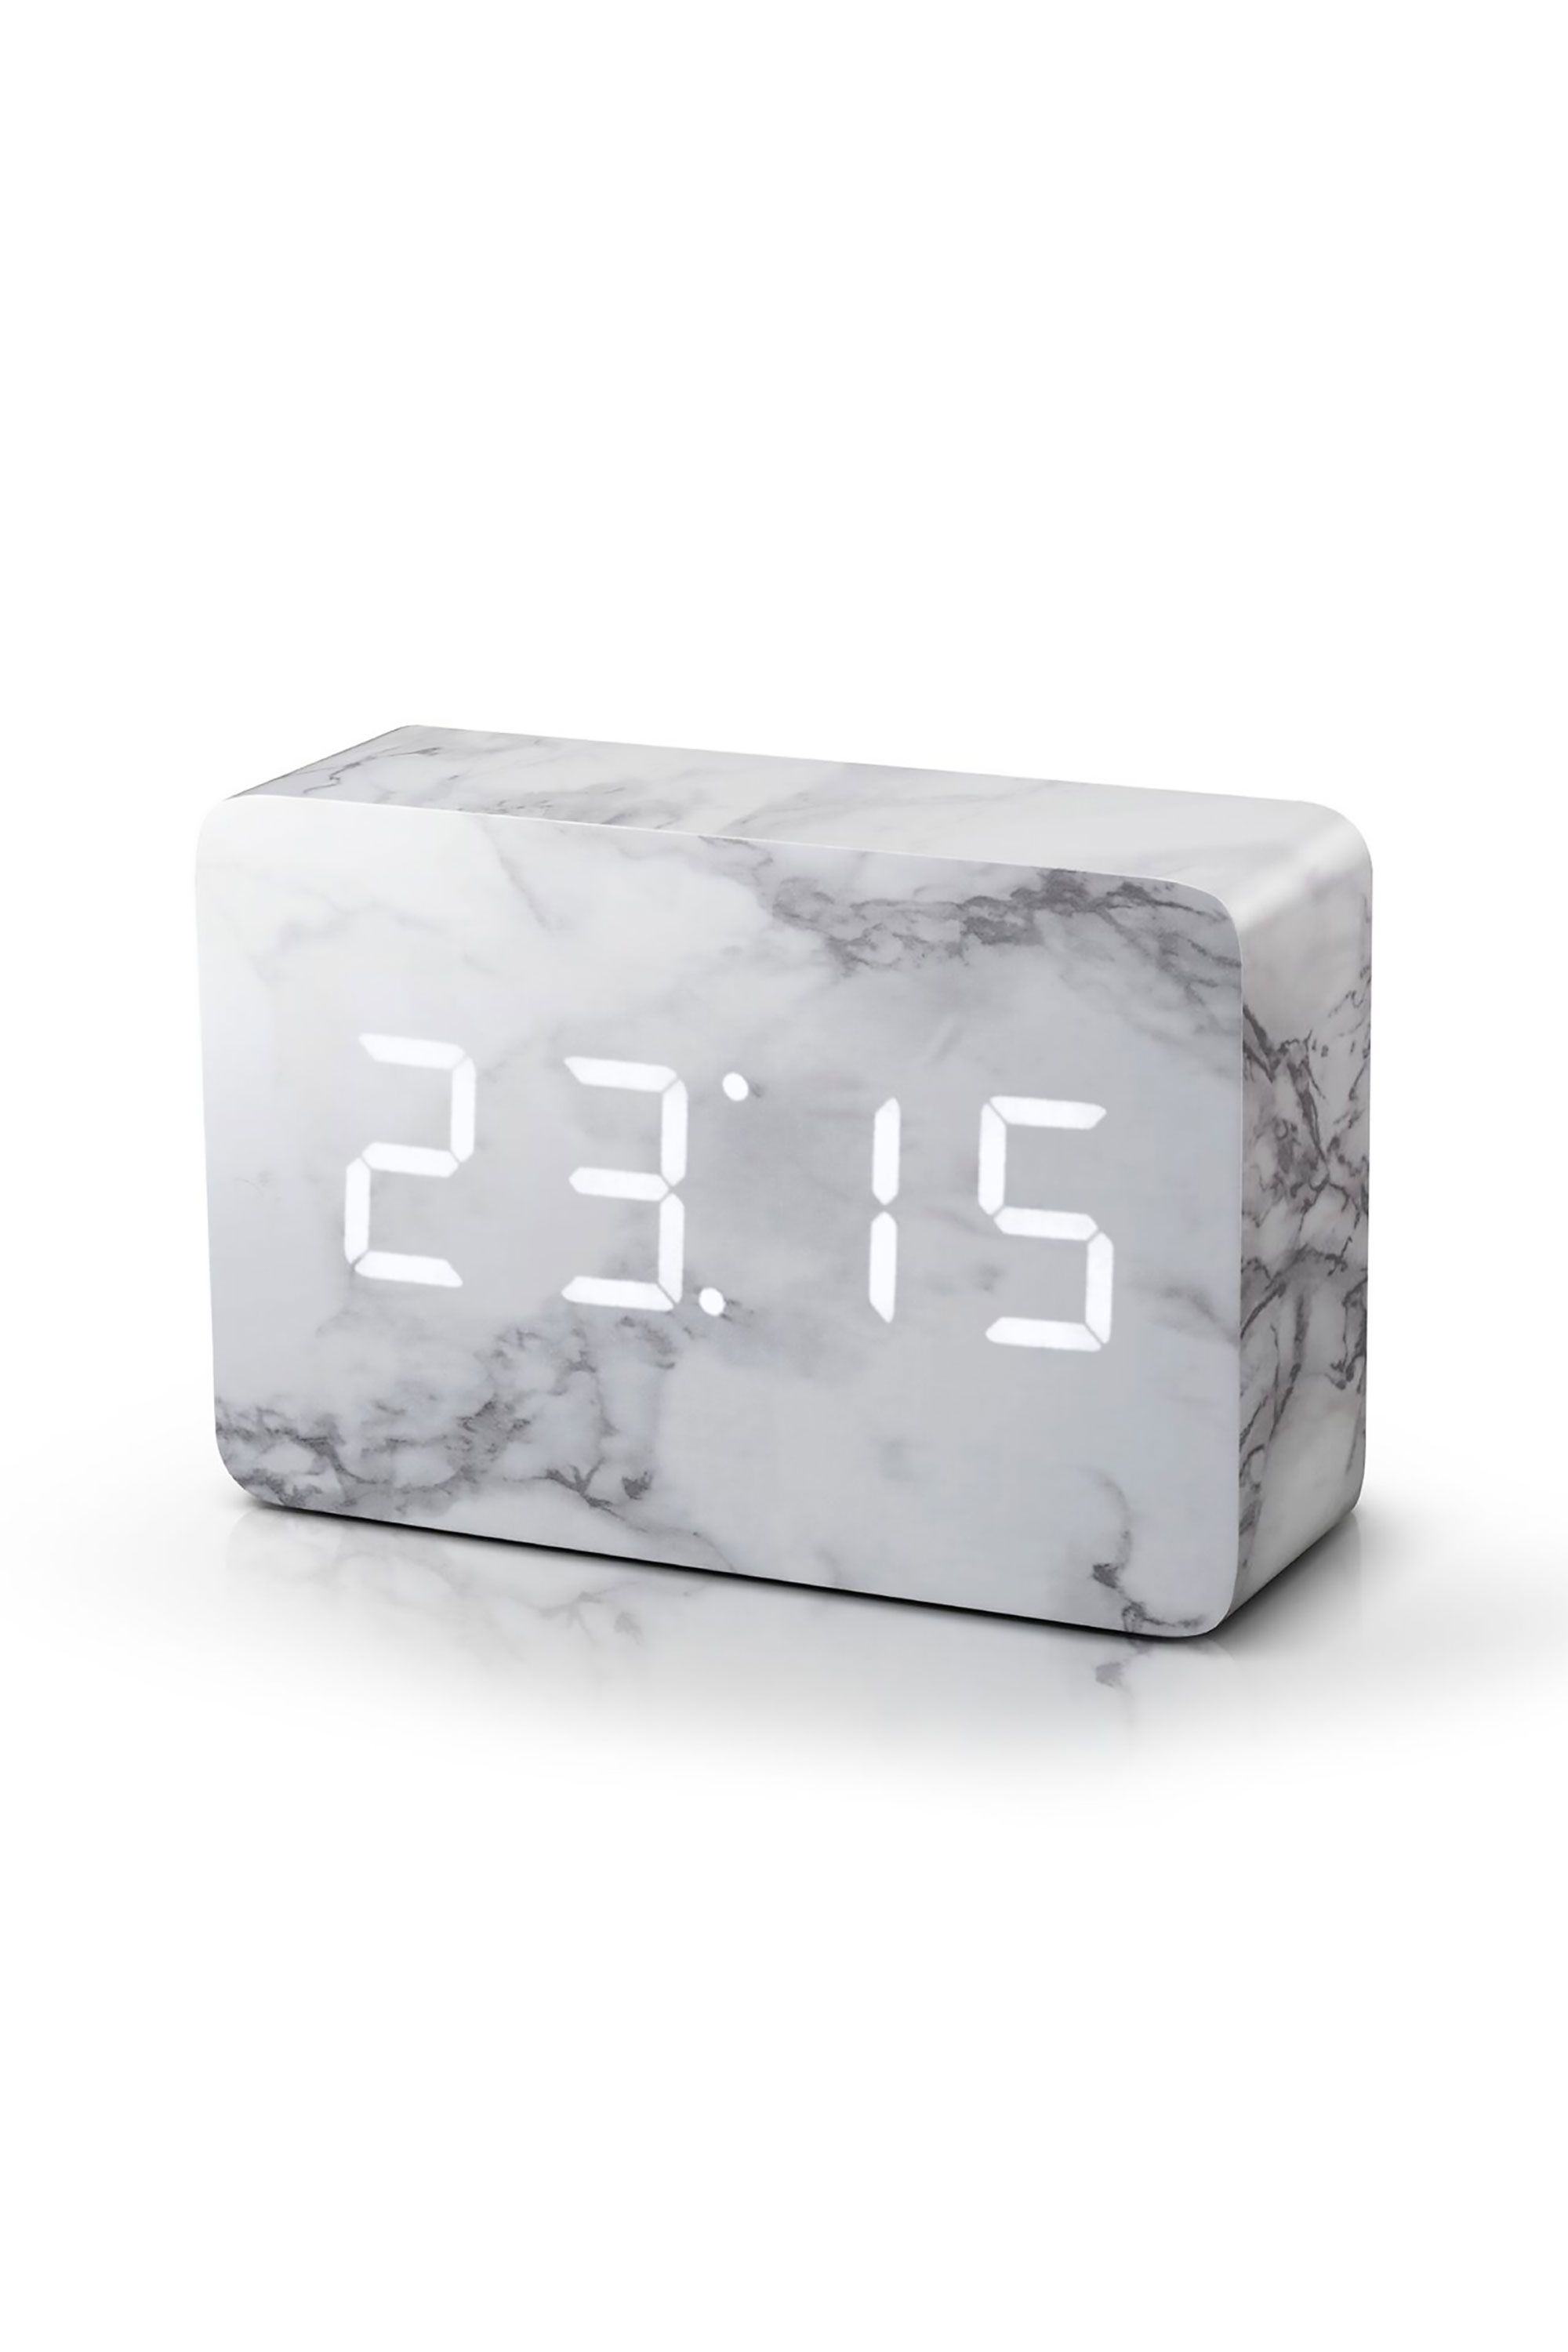 This Incredible Futuristic Clock: 19 Minimalist Marble Things That Will  Warm Your Stone Cold Heart